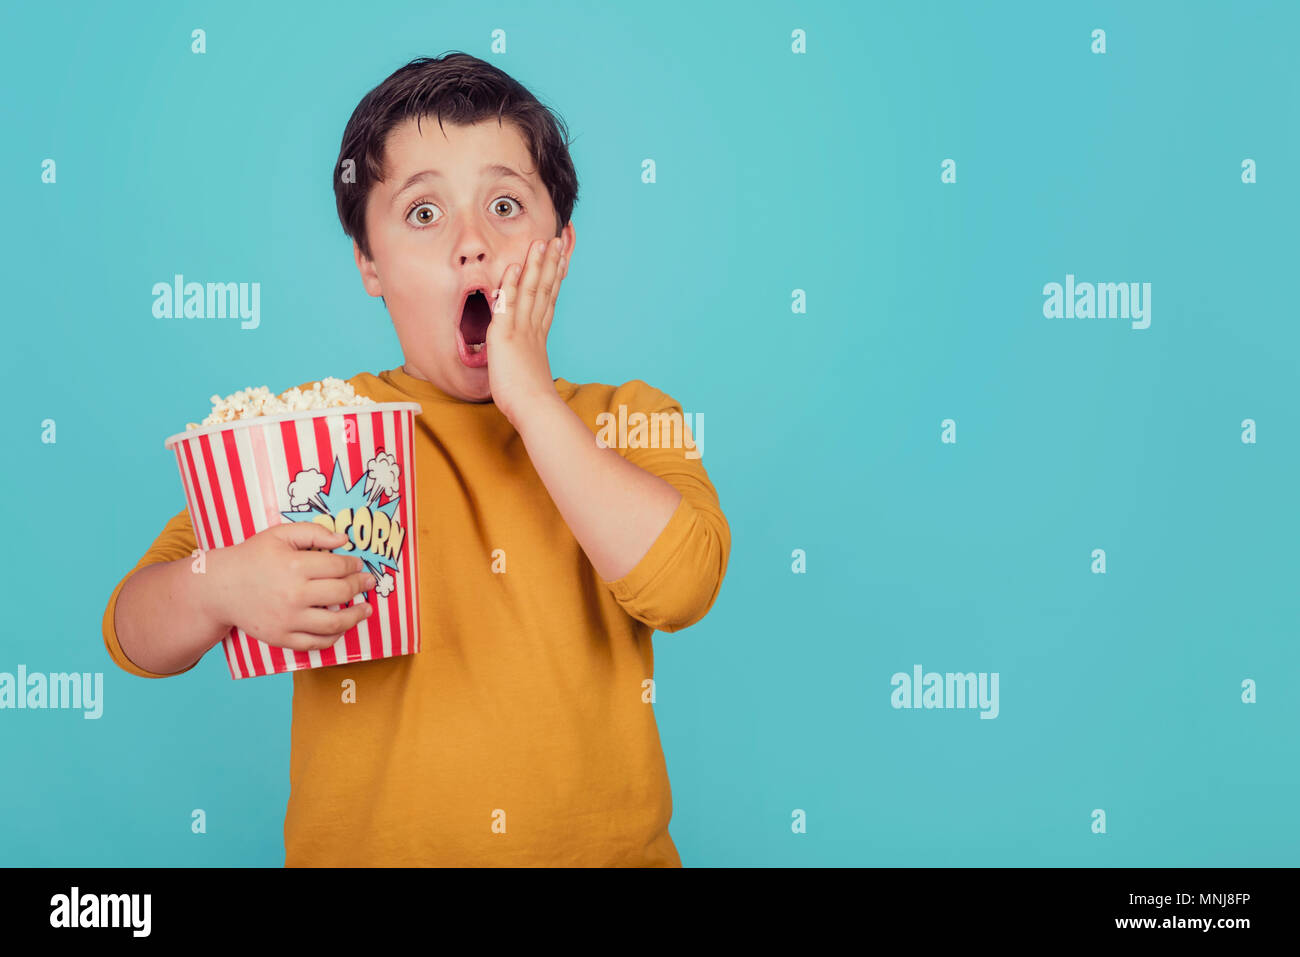 Surprise garçon avec popcorn on blue background Photo Stock